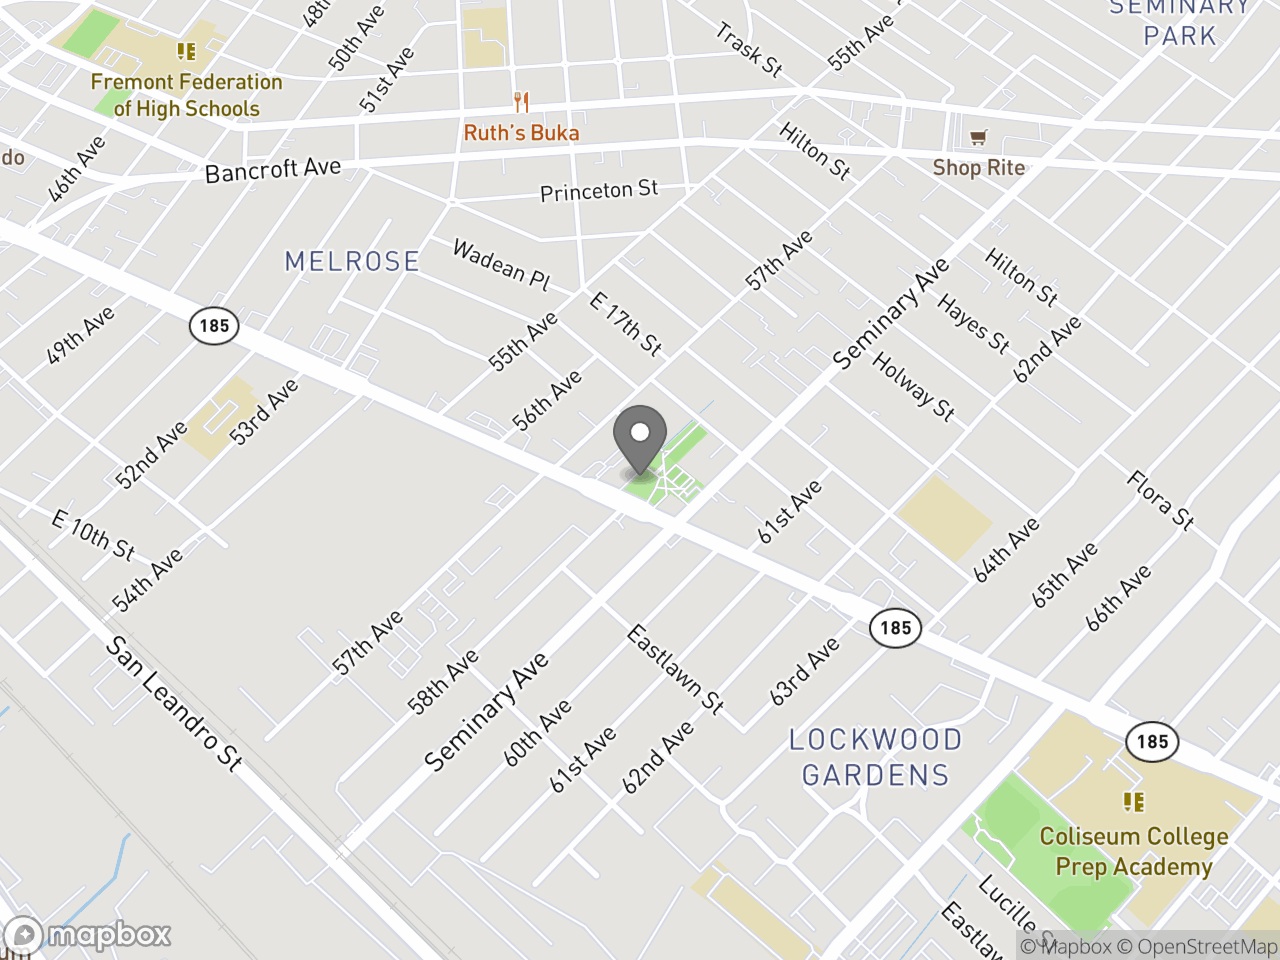 Map location for Rainbow Recreation Center, located at 5800 International Blvd in Oakland, CA 94621